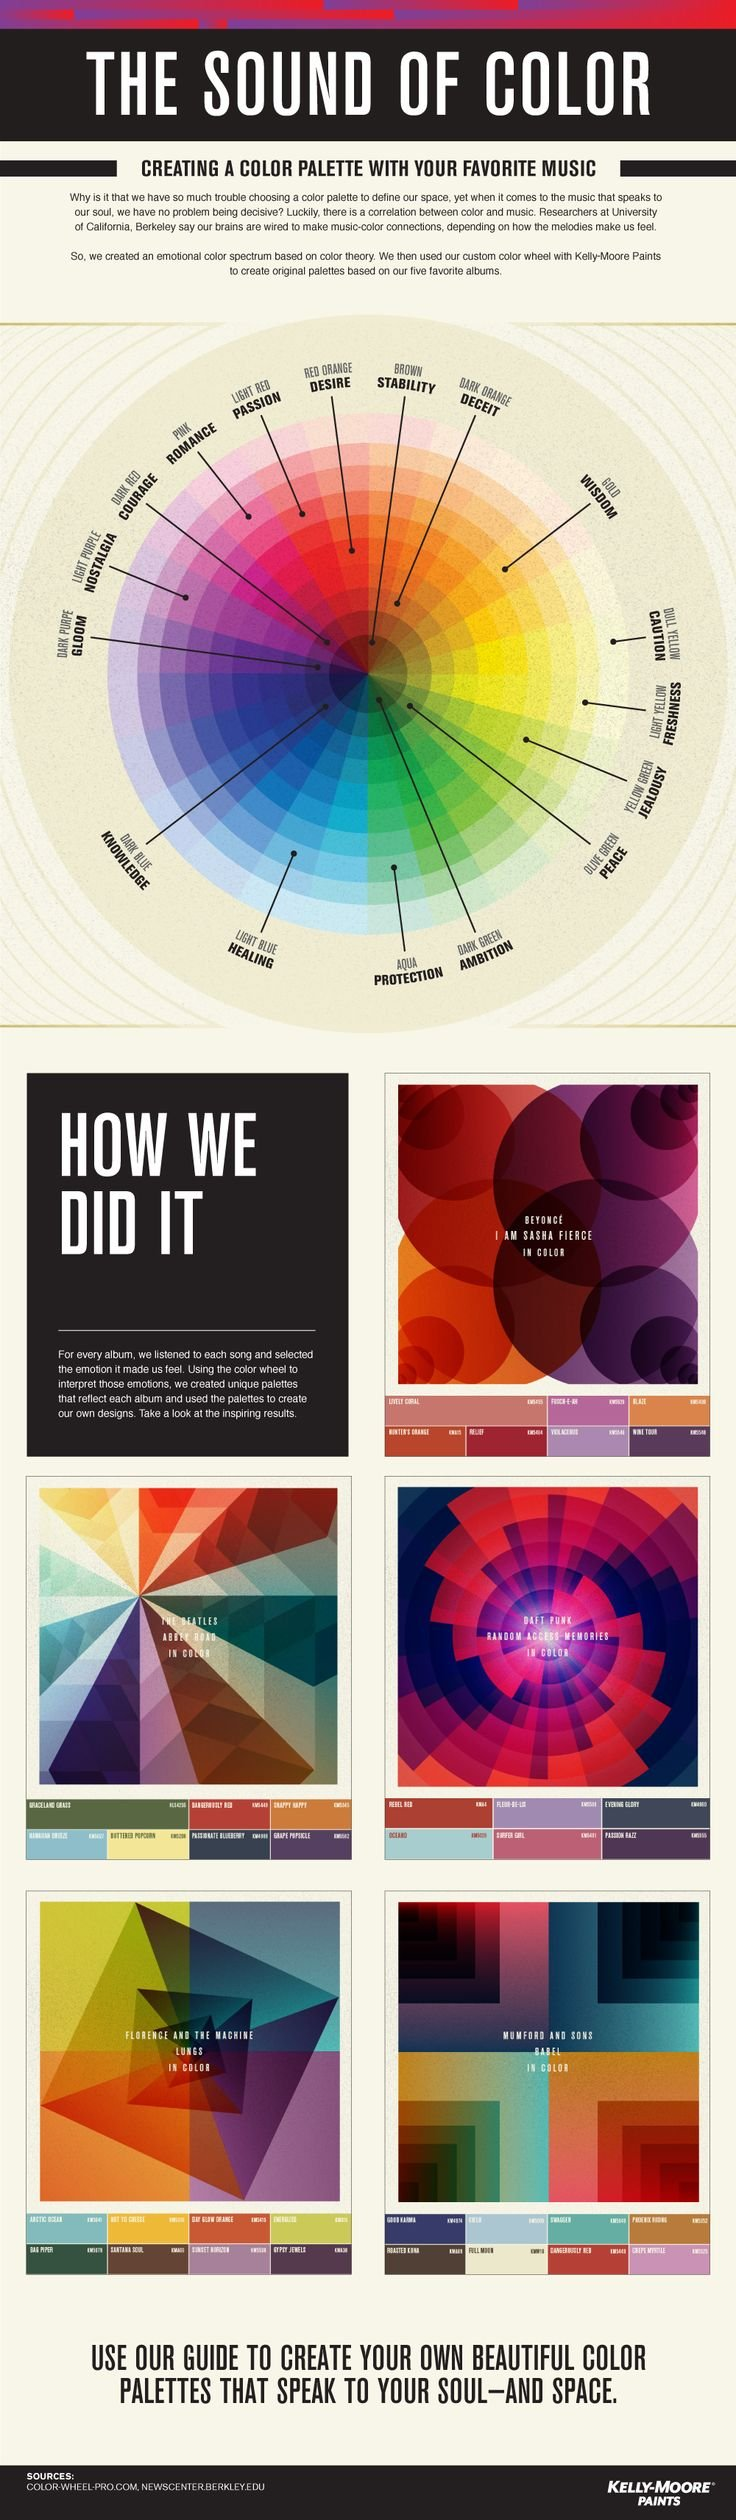 The Sound of Color: Creating a Color Palette with Your Favorite Music